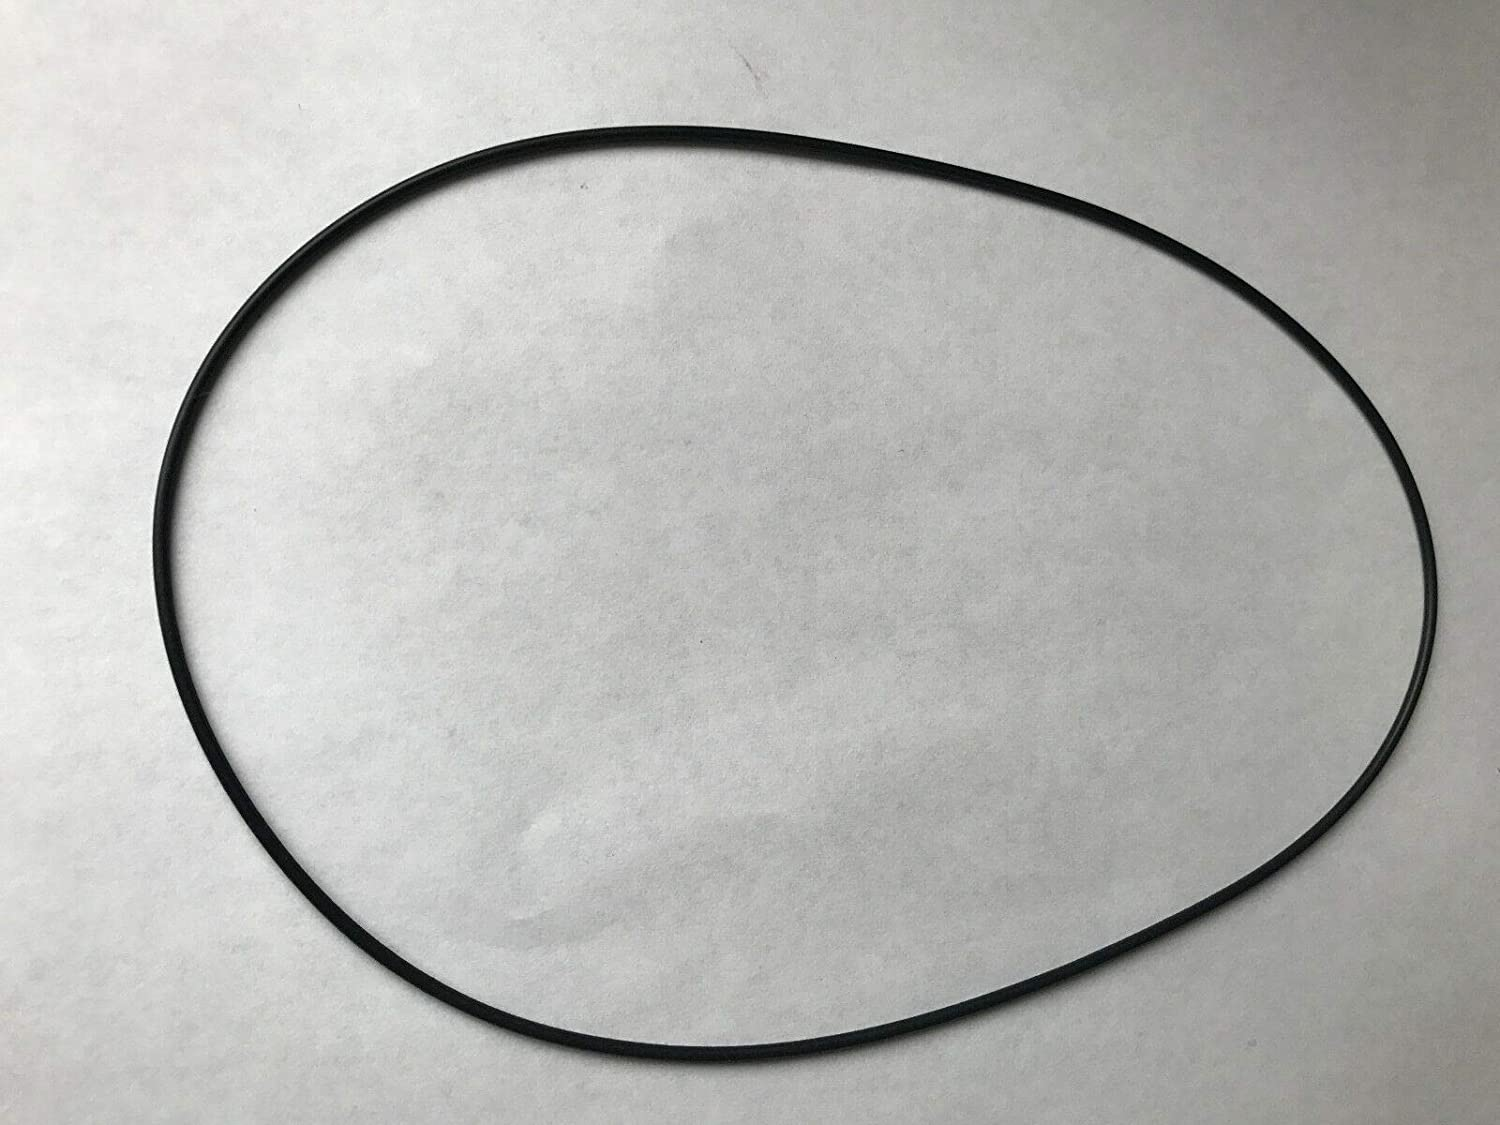 New Replacement supreme Belt for Delco 11AMFTI Tape Play Track 8 Max 73% OFF 42APBT1